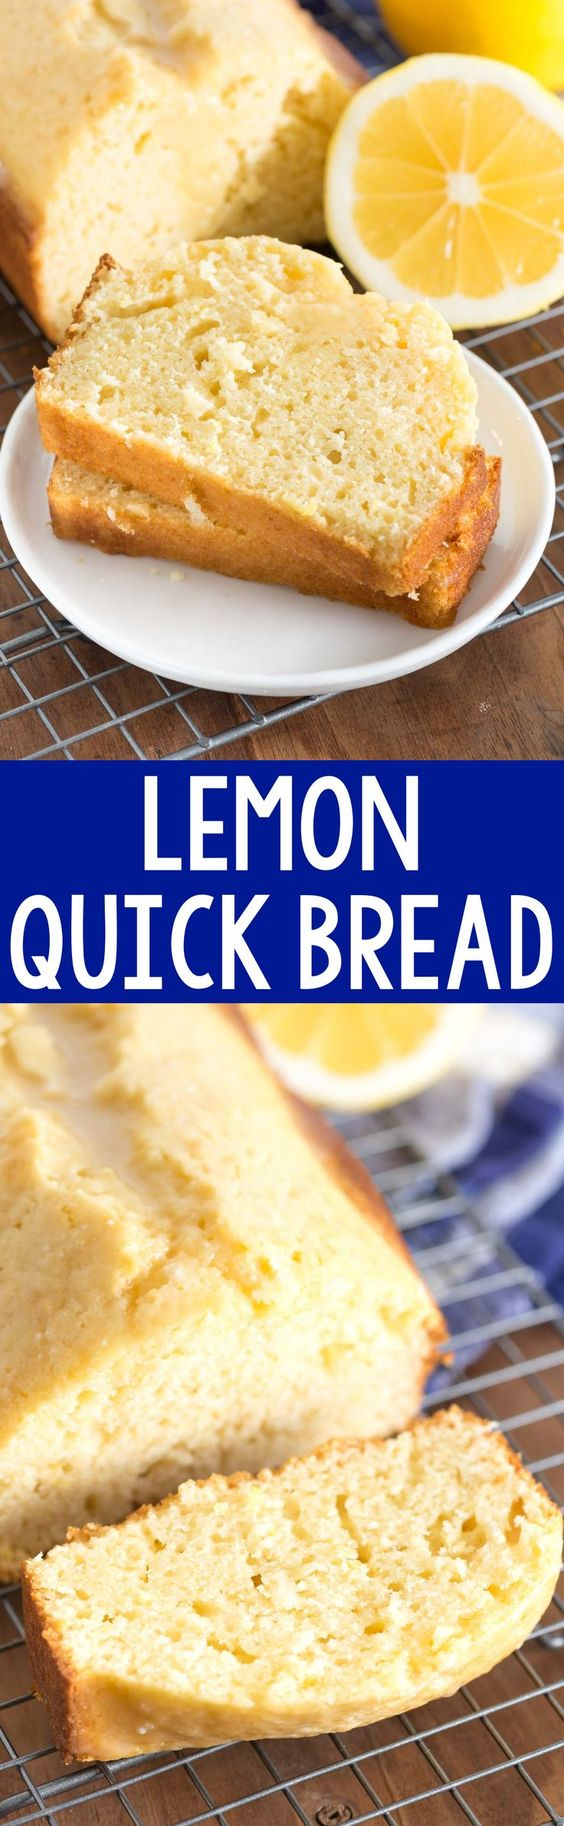 Lemon Quick Bread Recipe via Crazy for Crust - this easy quick bread recipe is bursting with lemon flavor. It's great for dessert or breakfast - with or without a lemon glaze! #dessertbreads #neighborgifts #homemadegifts #foodgifts #breadrecipes #flavoredbreads #sweetbreads #holidaybread #bread #homemadebread #simplebreadrecipes #simplebread #simplerecipes